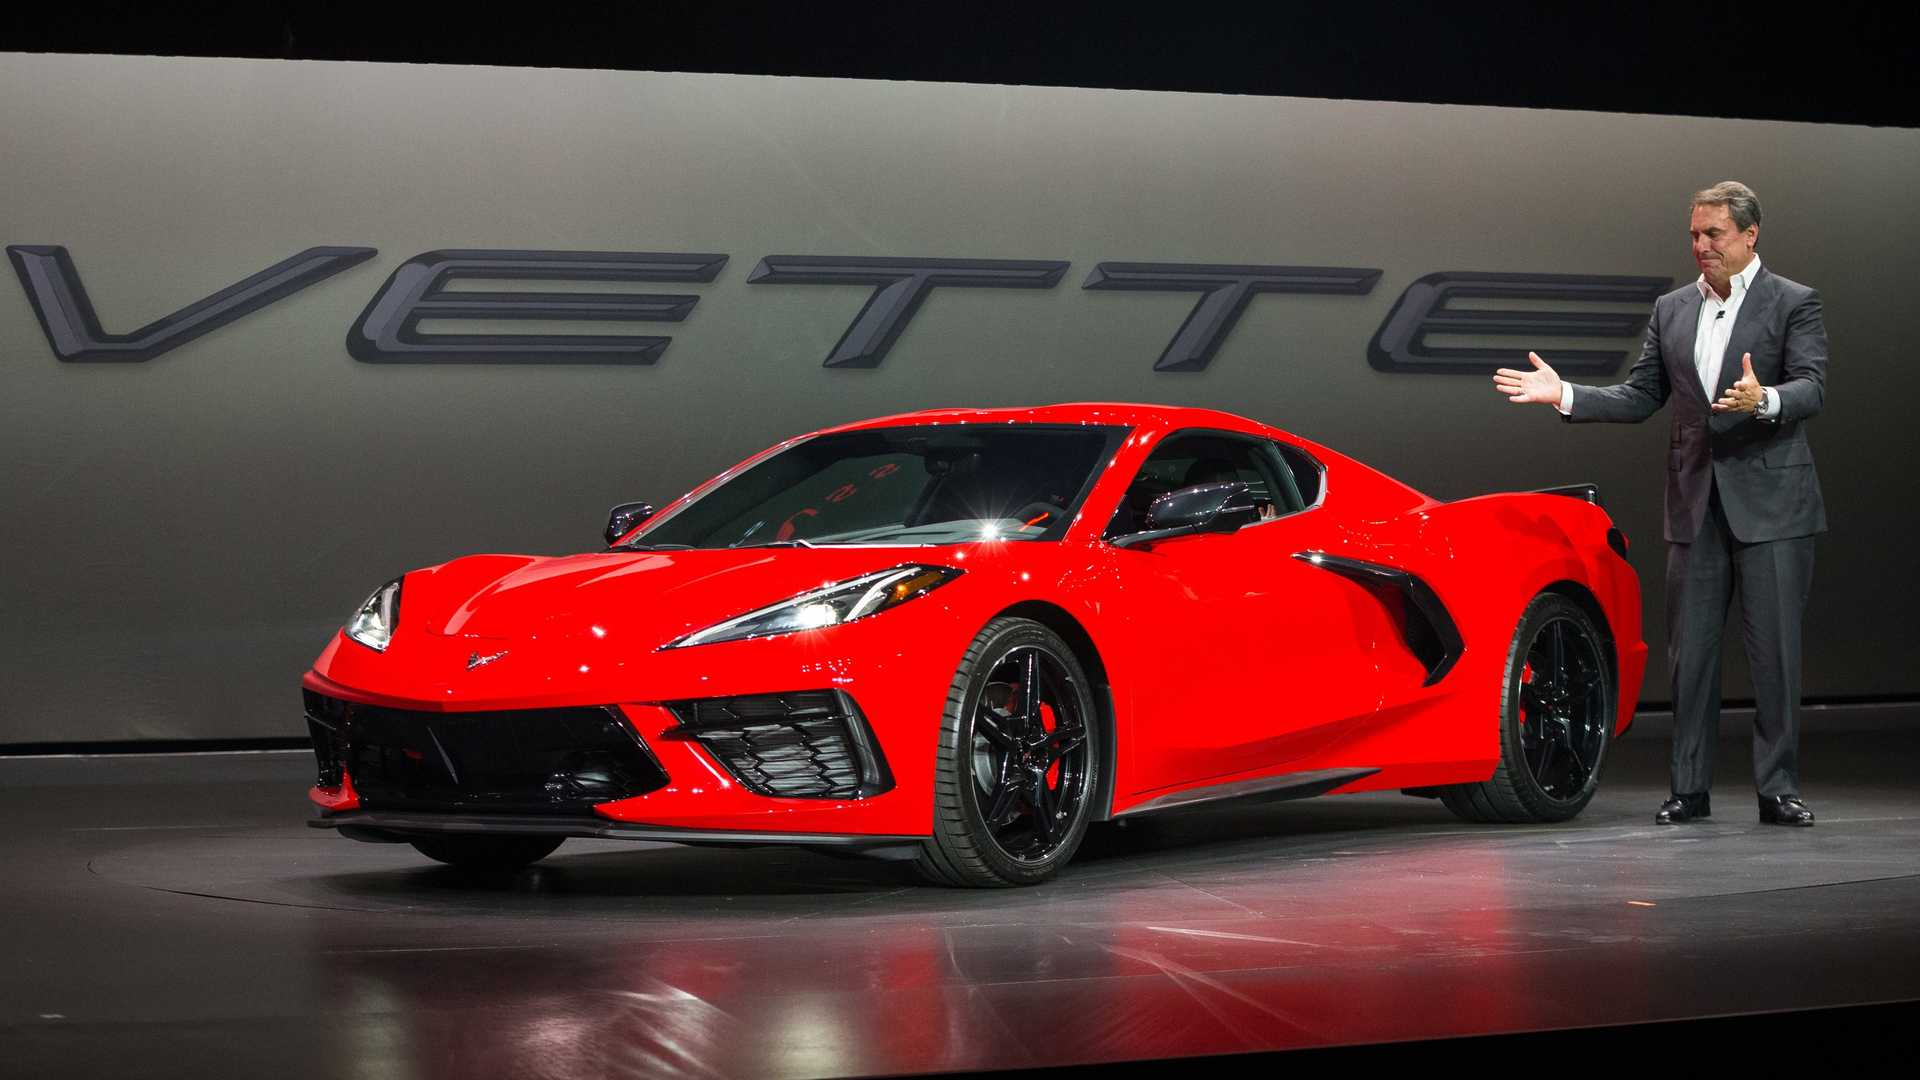 2020 Chevy Corvette C8 Dealer Playbook Puts All The Details